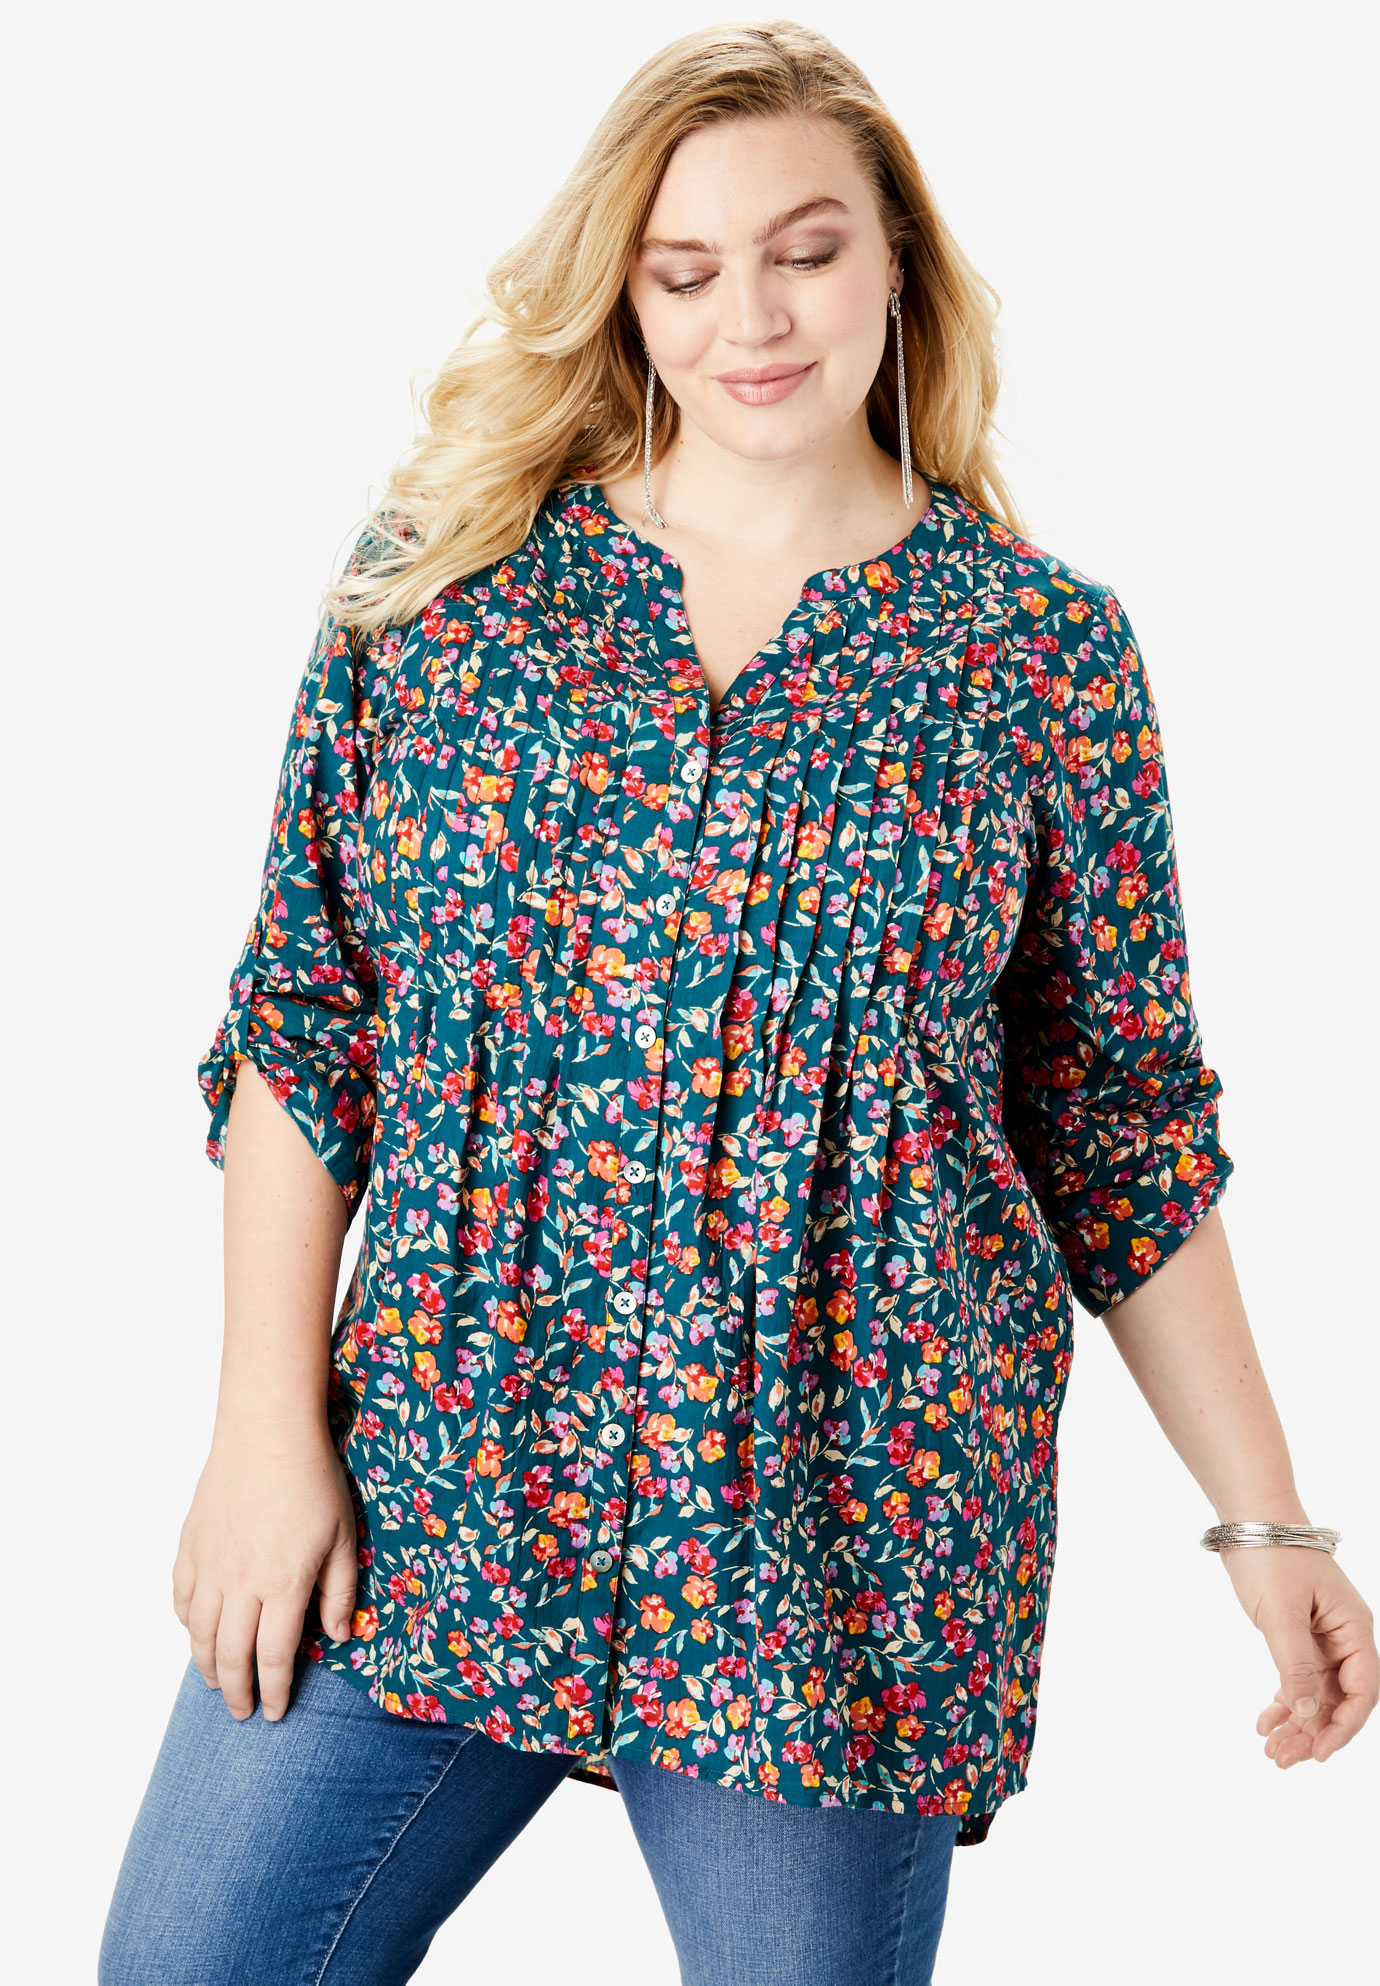 English Floral Big shirt,